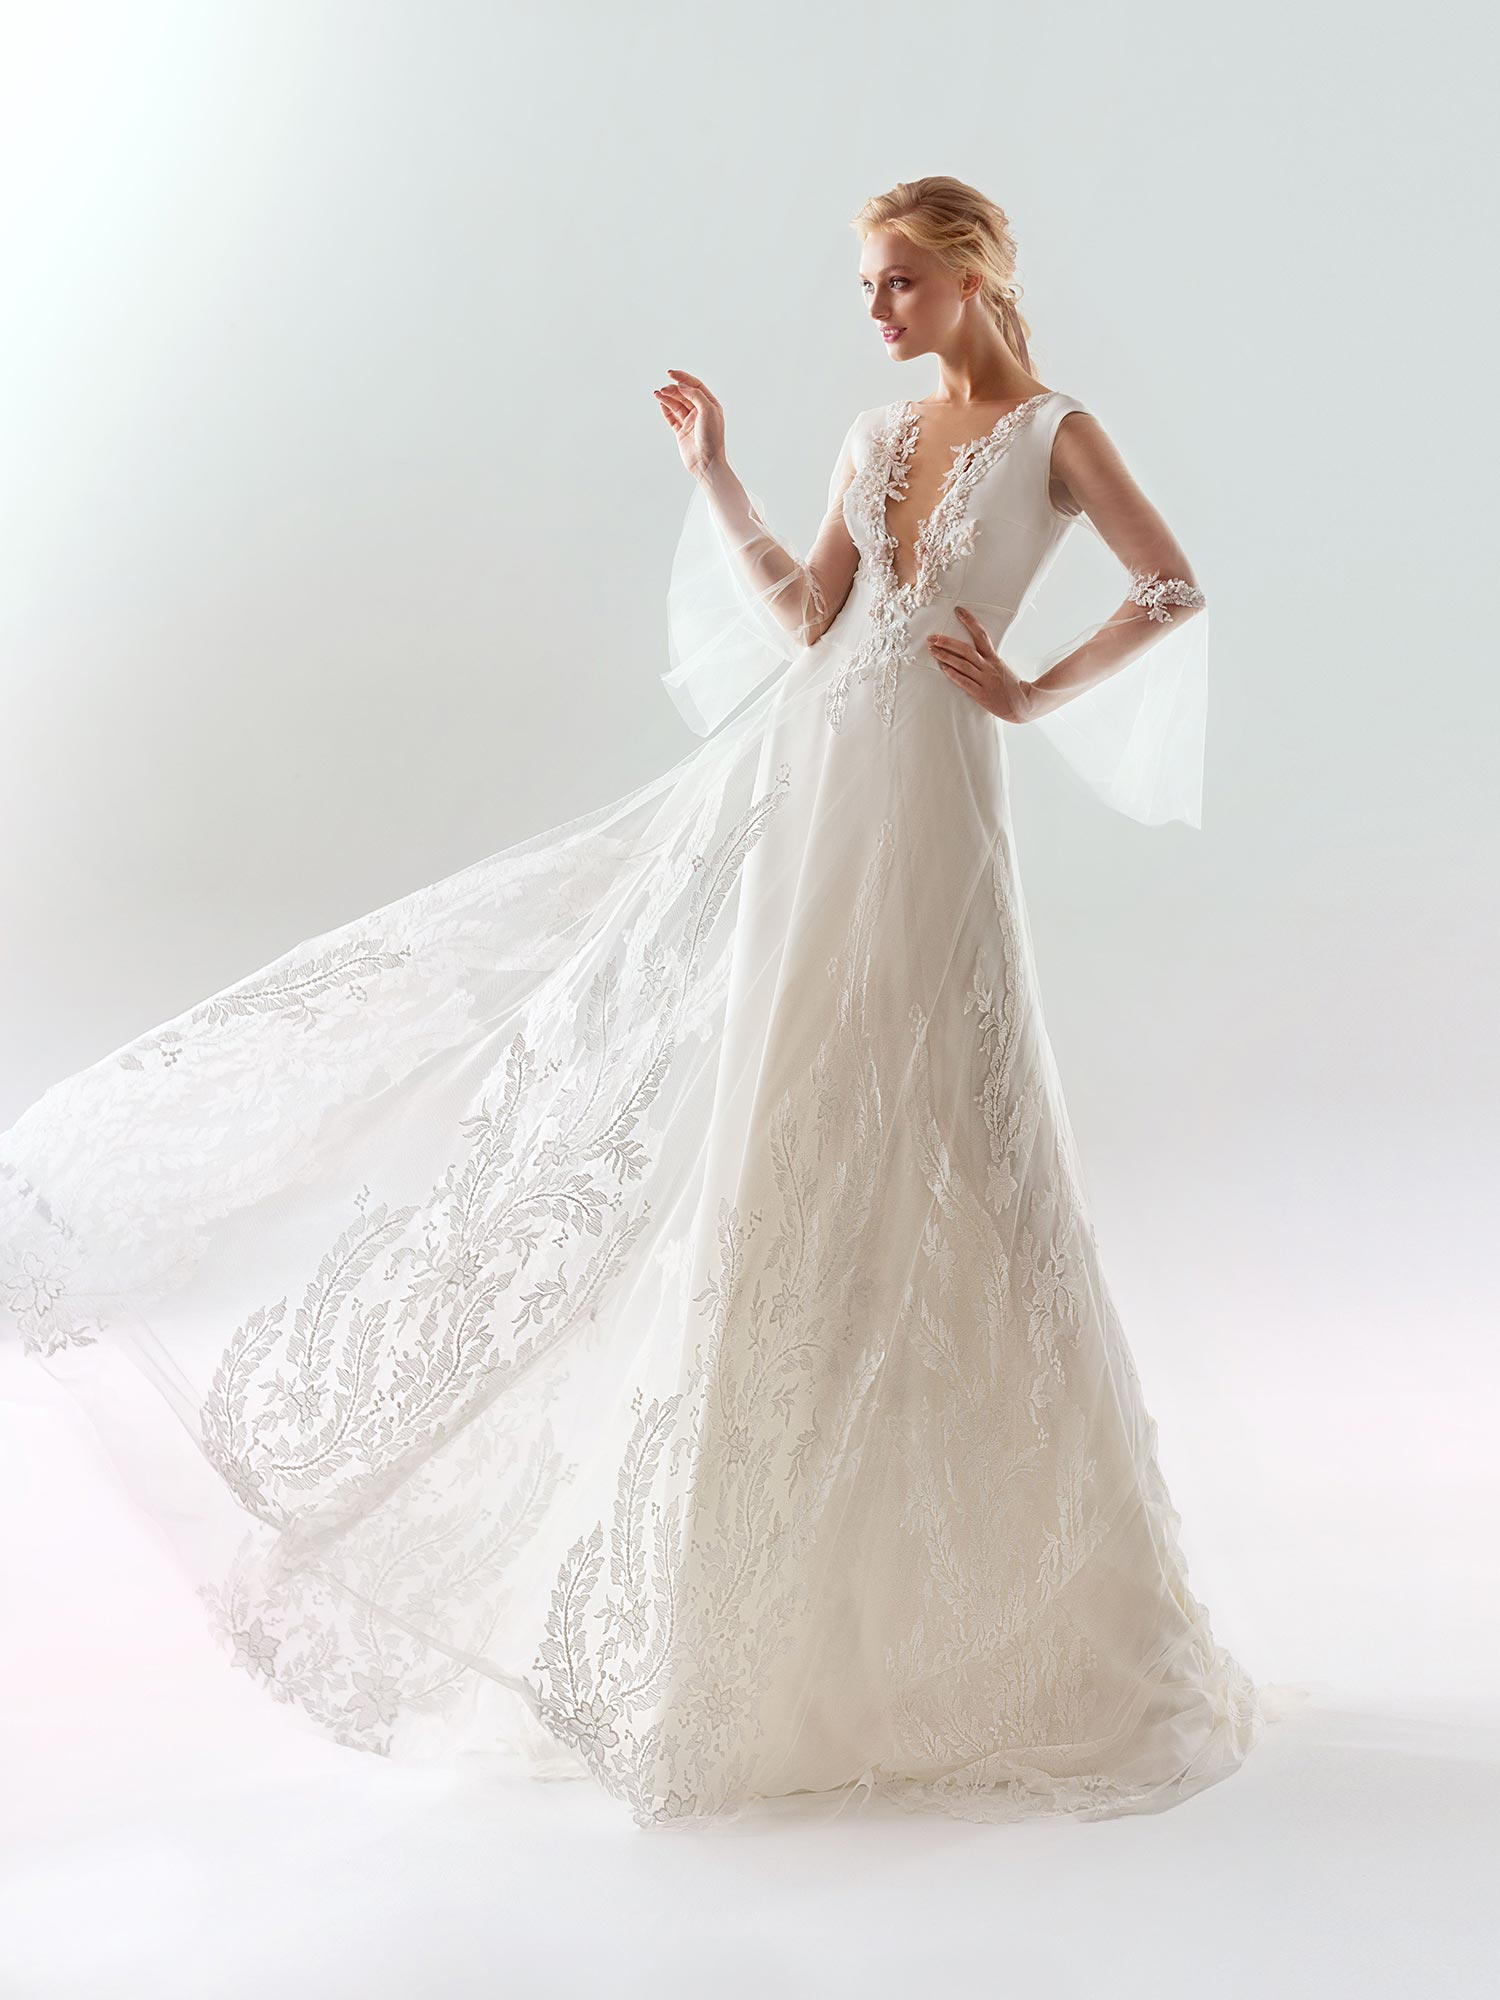 714401b7abc9 Home / Bridal Fashion / Bell sleeved A-line wedding dress with plunging  illusion neckline